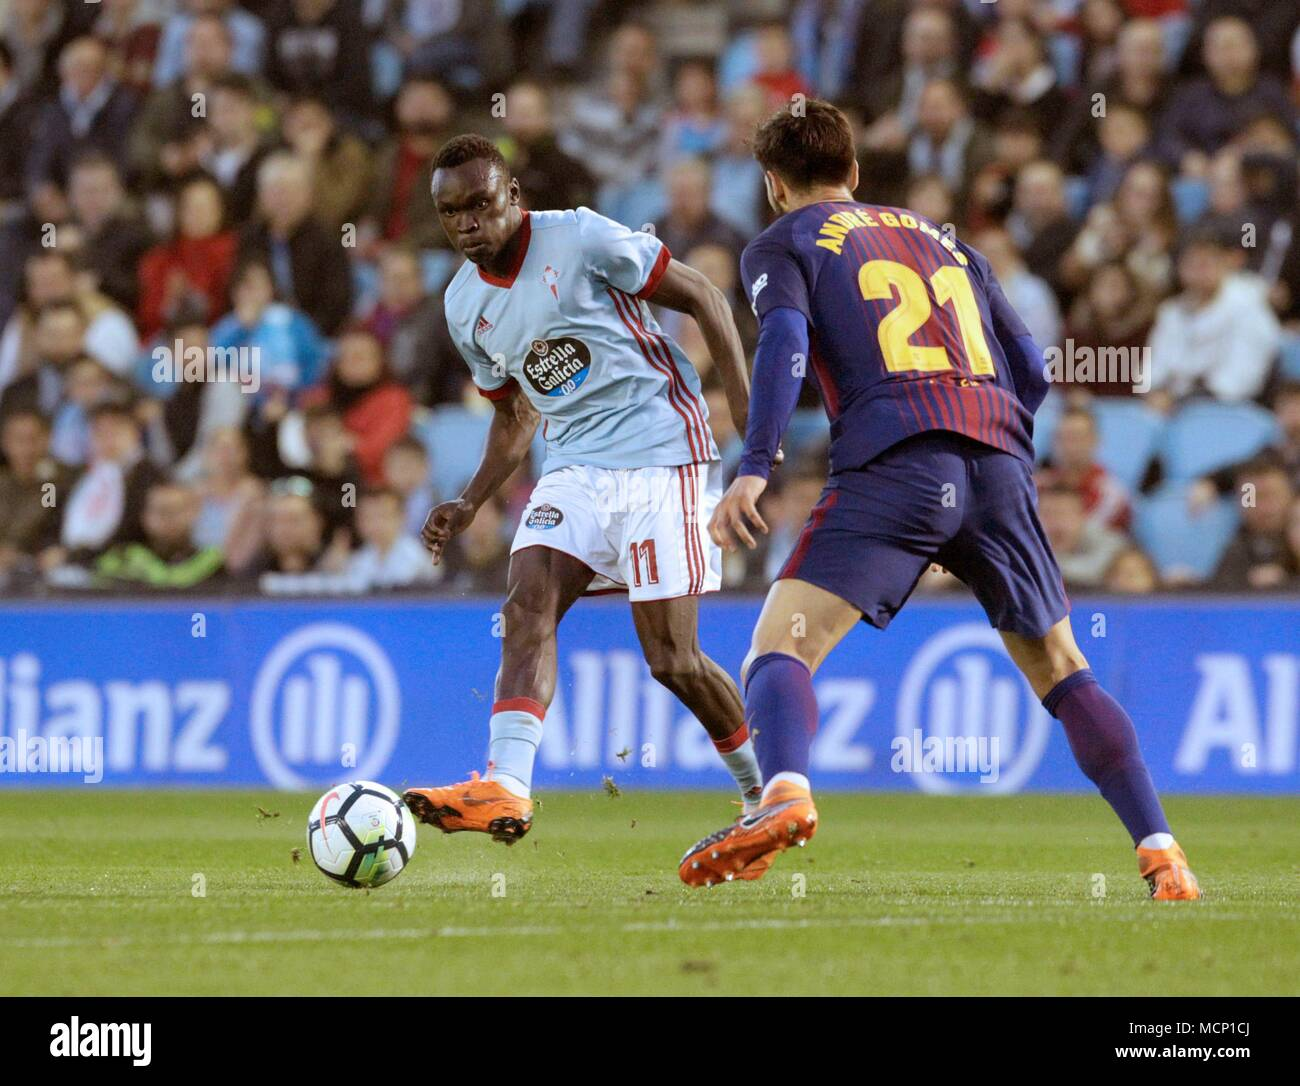 Barcelona Vs Celta Vigo In Youtube: Pione Sisto Stock Photos & Pione Sisto Stock Images